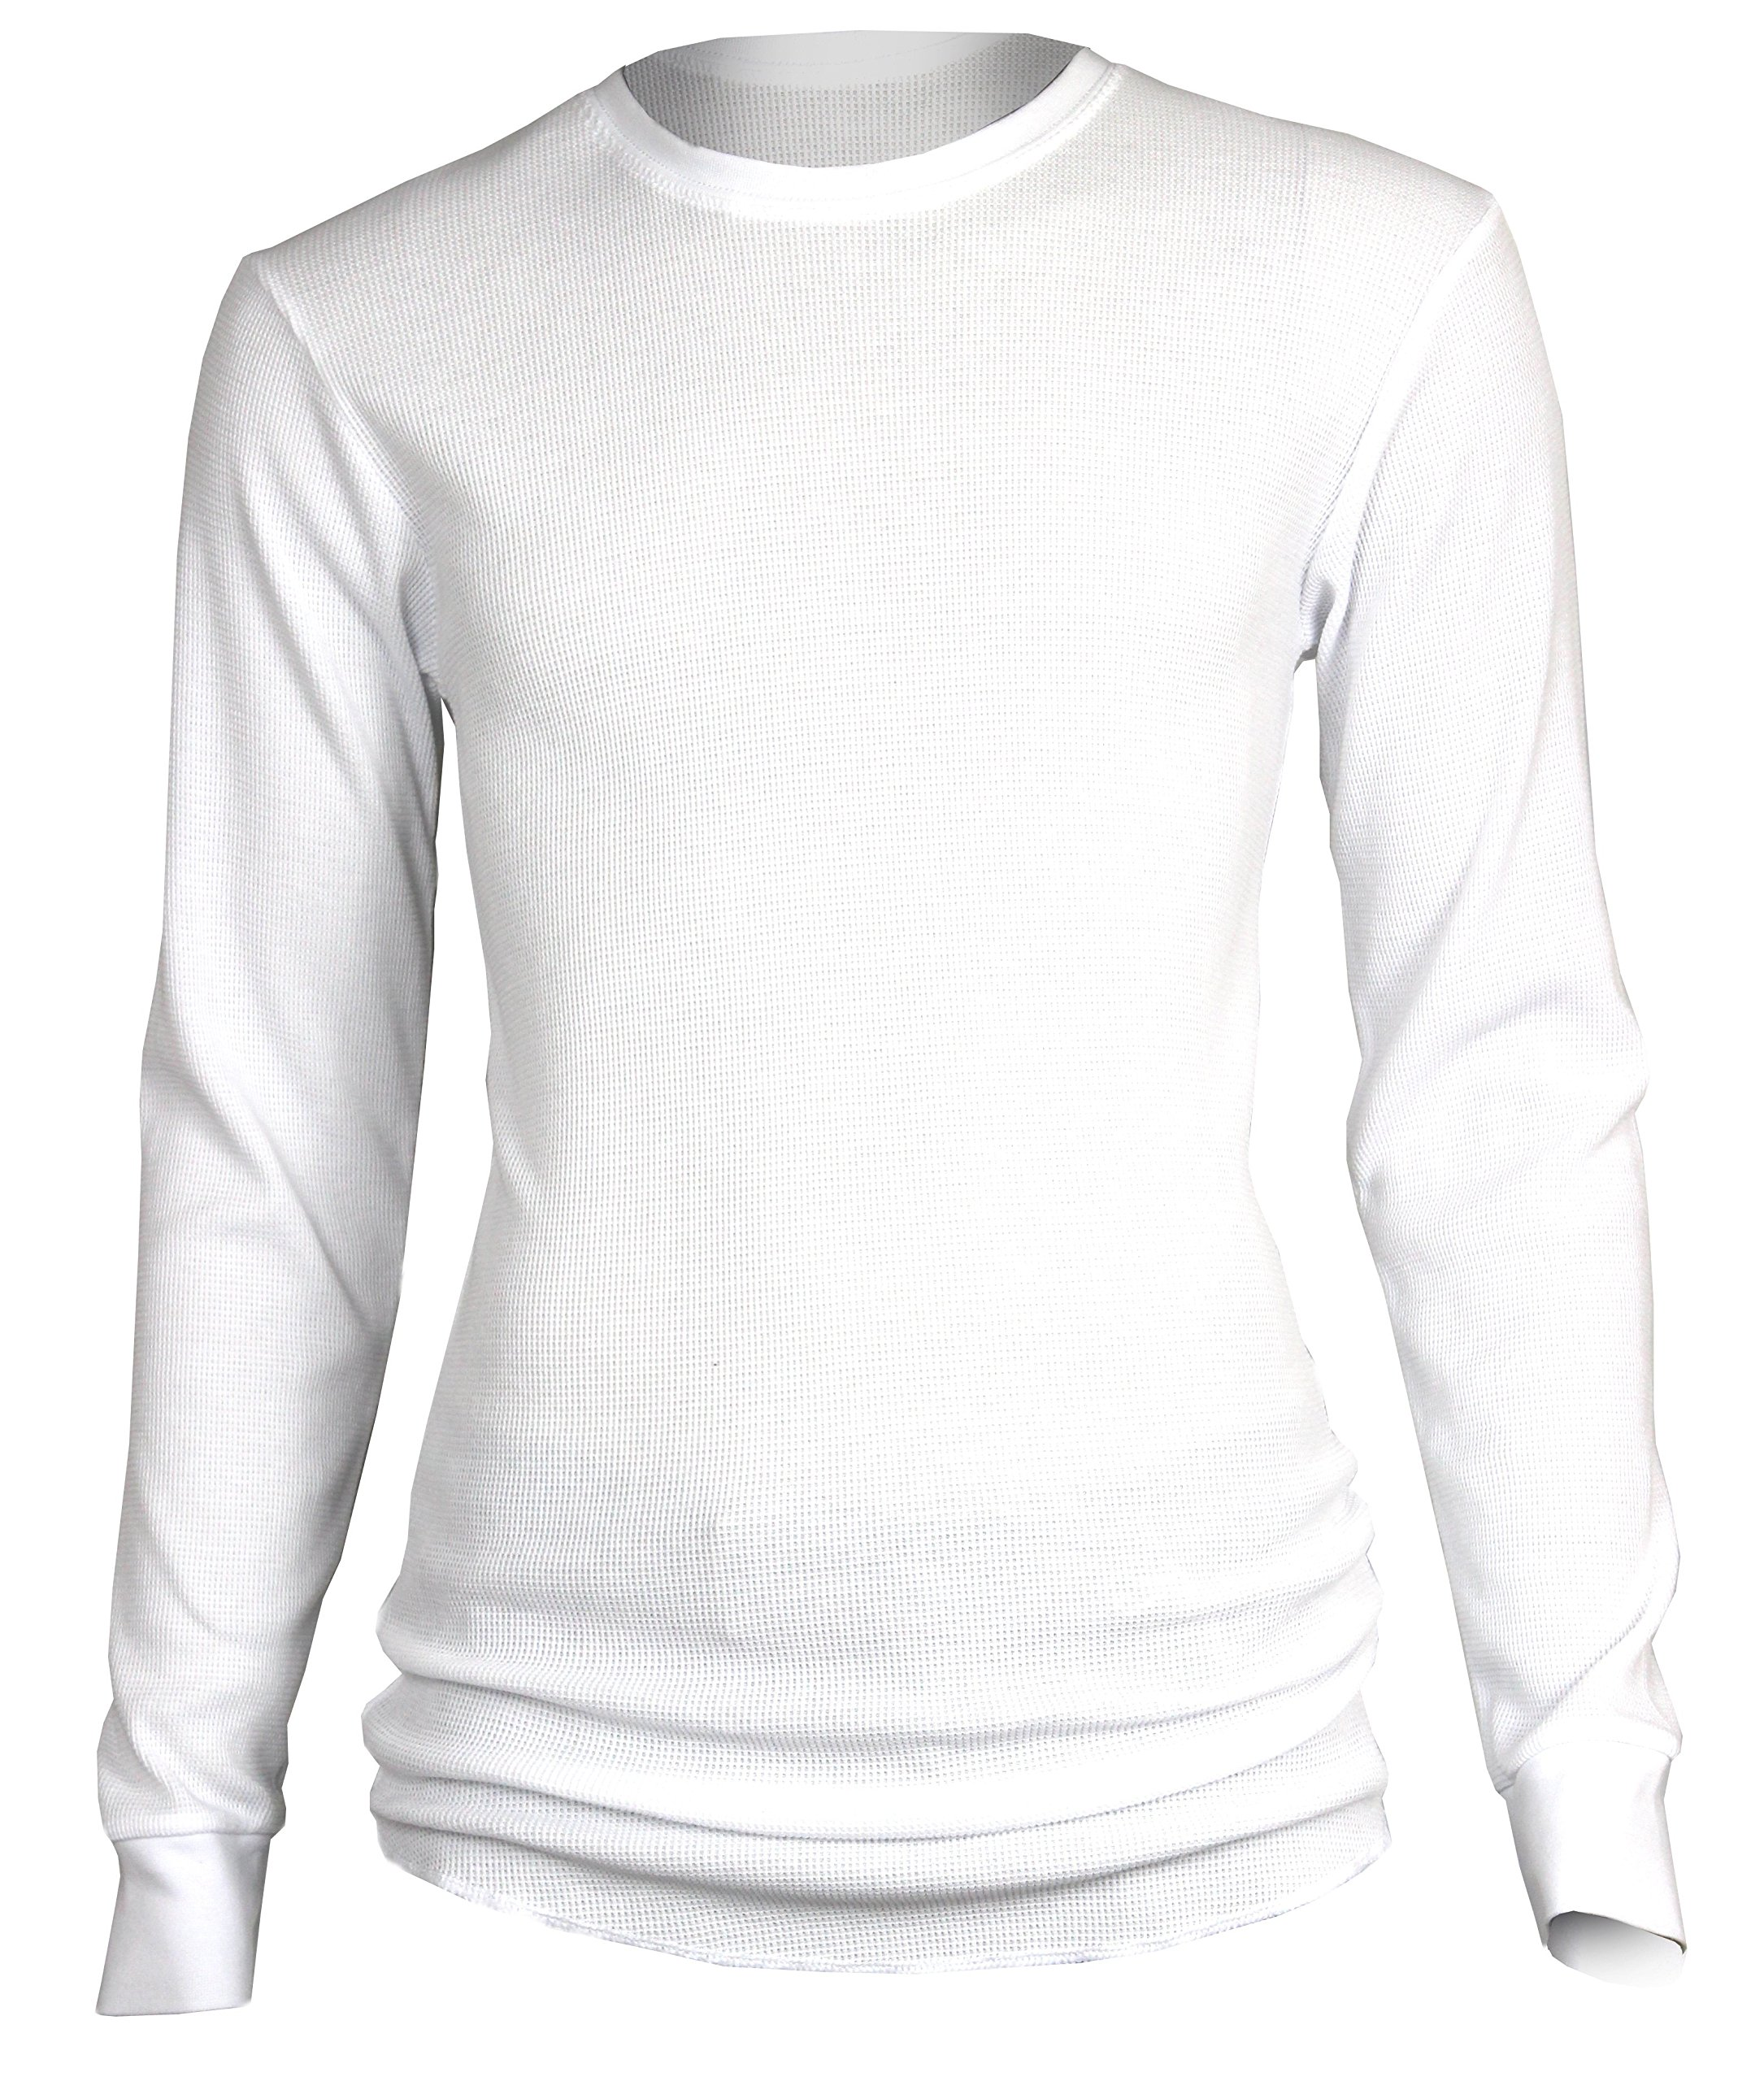 Access Fitted Long Sleeve Thermal Shirt -White-Small